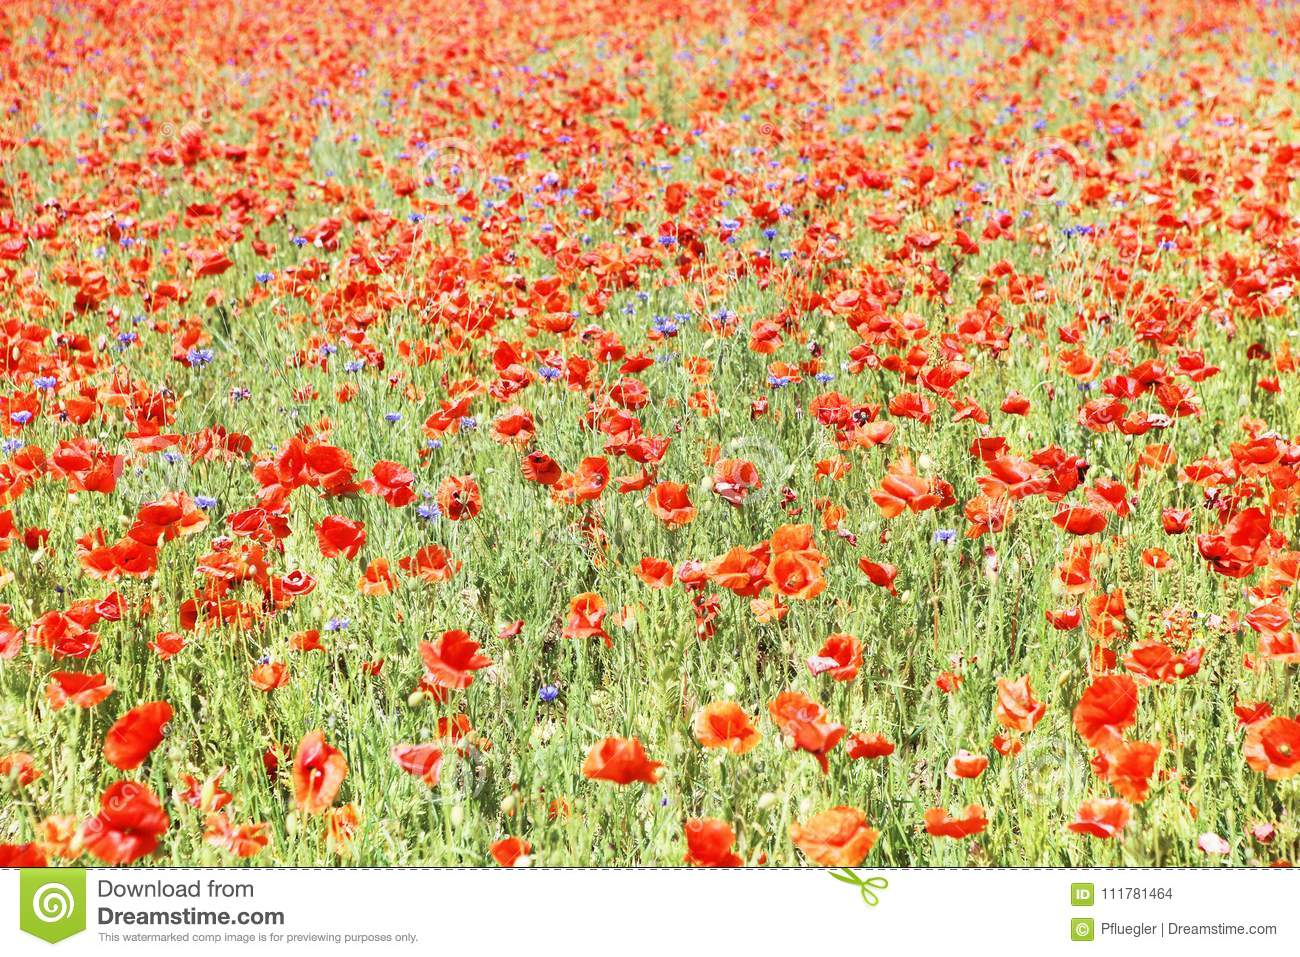 Many red poppies